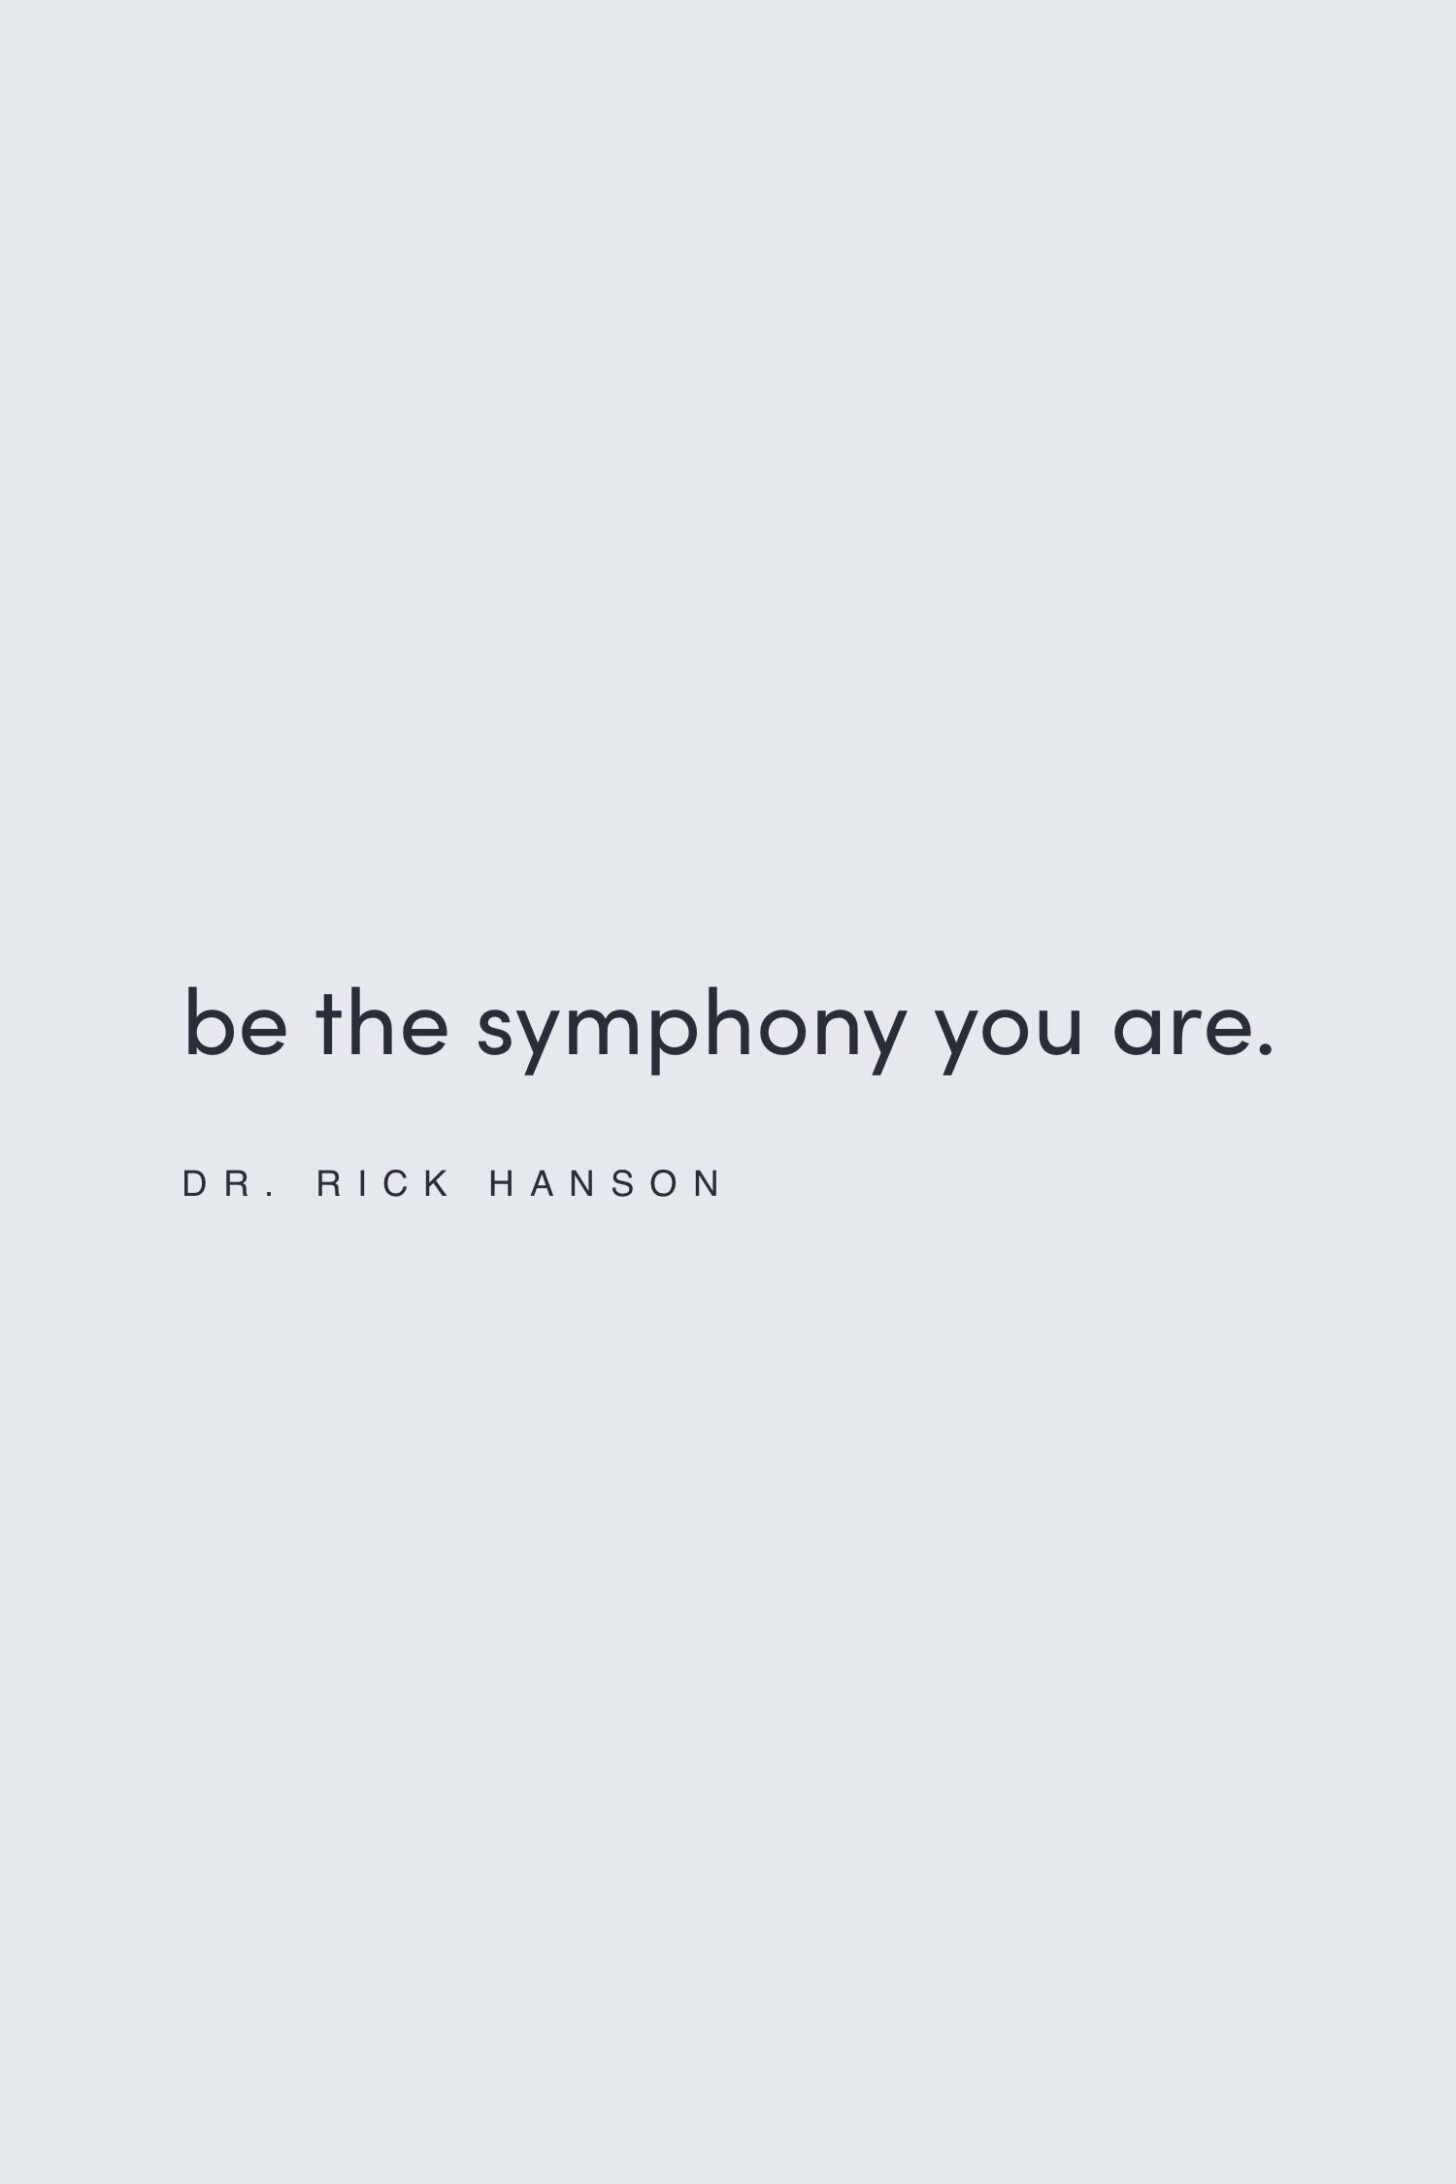 Quote on being the symphony you are by Dr. Rick Hanson on the Feel Good Effect Podcast #realfoodwholelife #feelgoodeffectpodcast #resiliencequote #selflovequote #selfcarequote #mindfulnessquote #motivationalquote #inspirationalquote #positivityquote